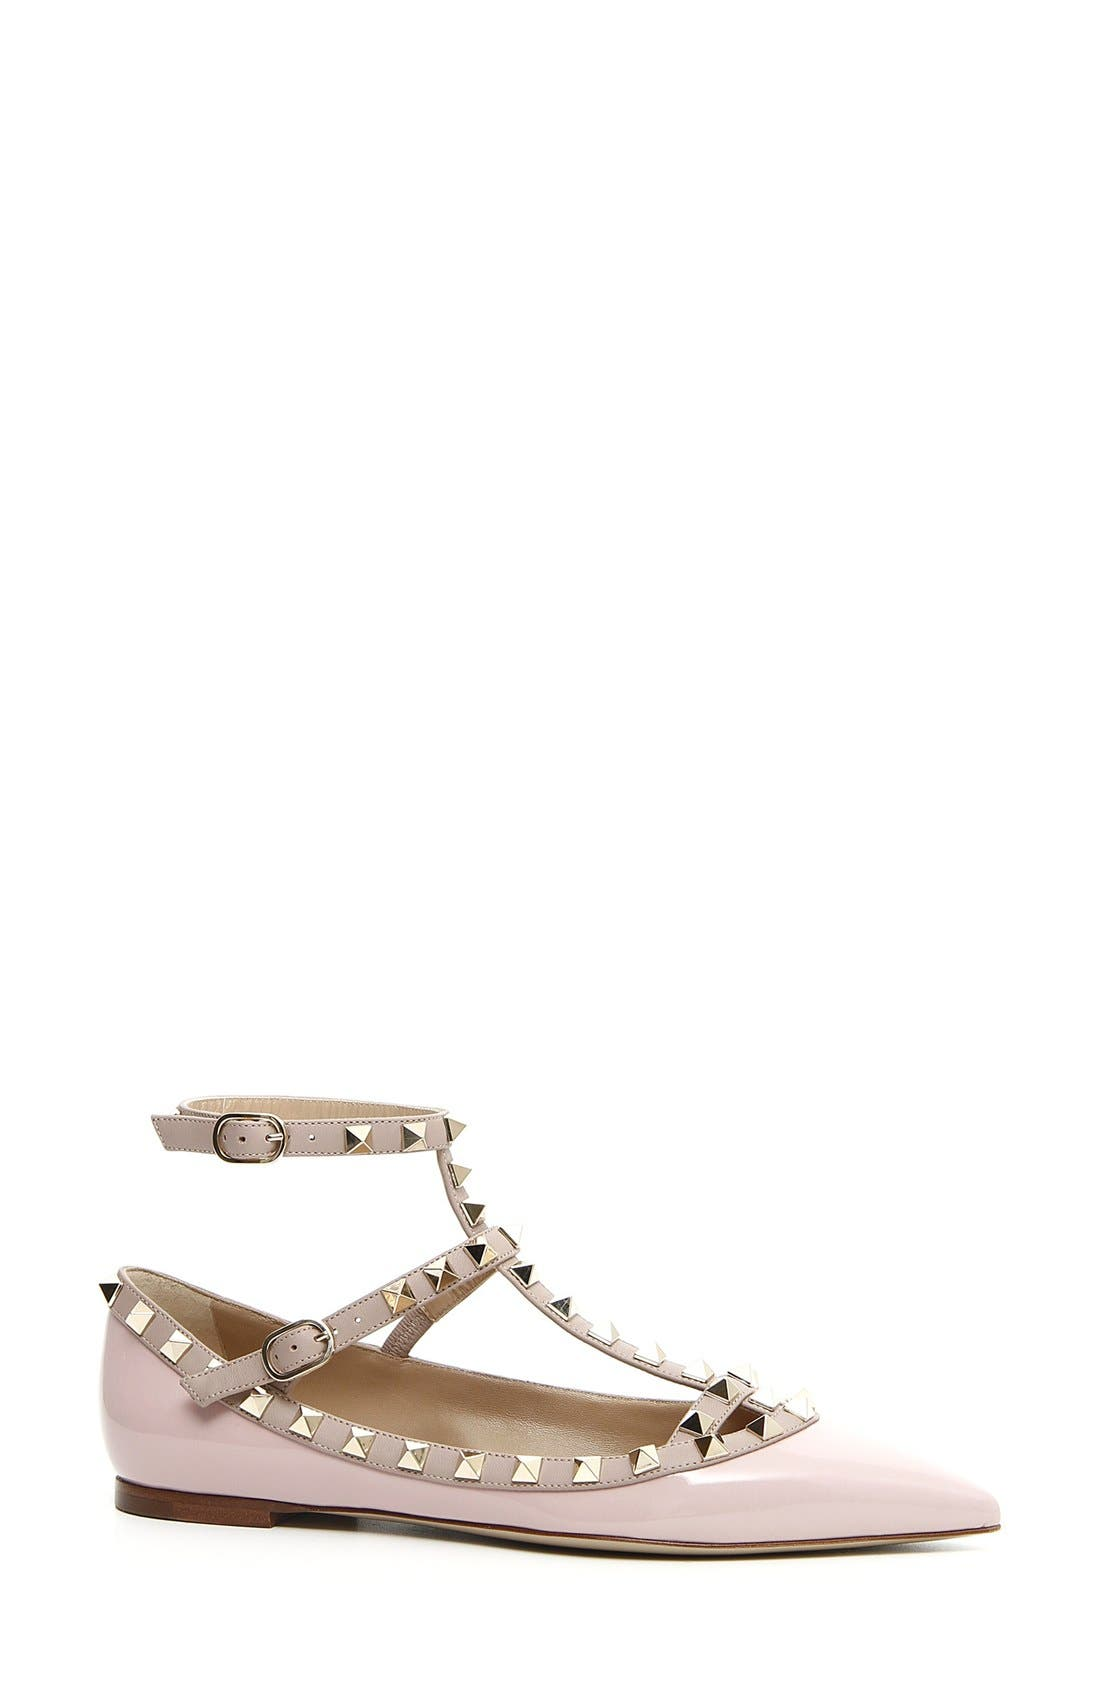 Alternate Image 1 Selected - VALENTINO GARAVANI 'Rockstud' T-Strap Flat (Women)